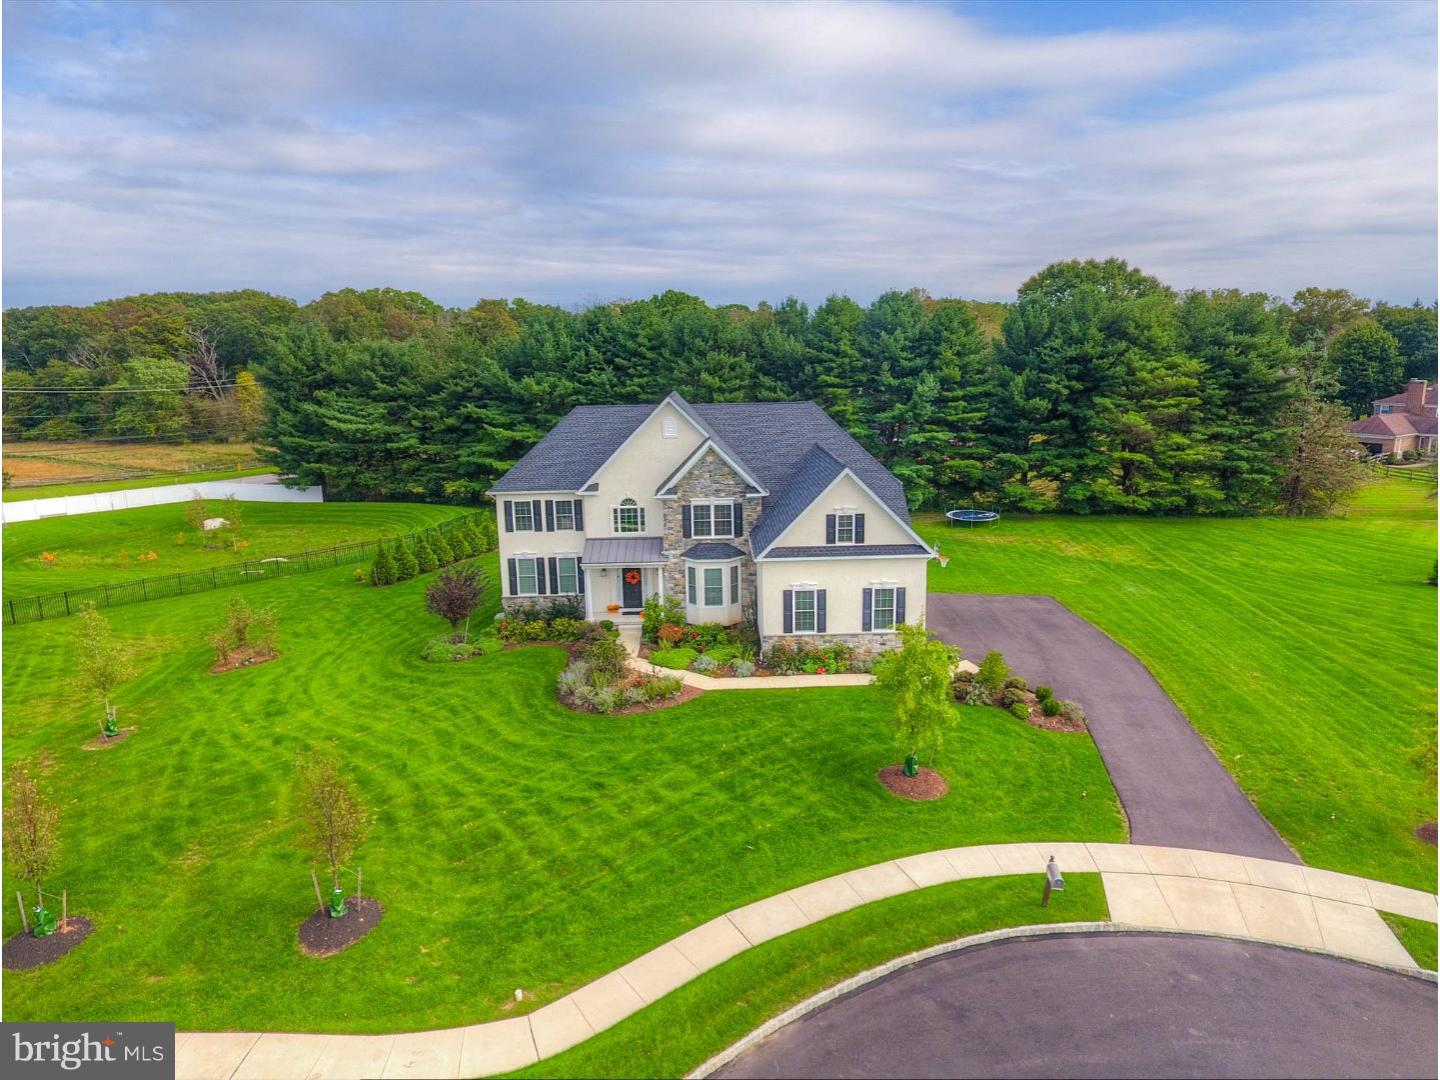 355 BRENTWOOD DRIVE, BLUE BELL, PA 19422